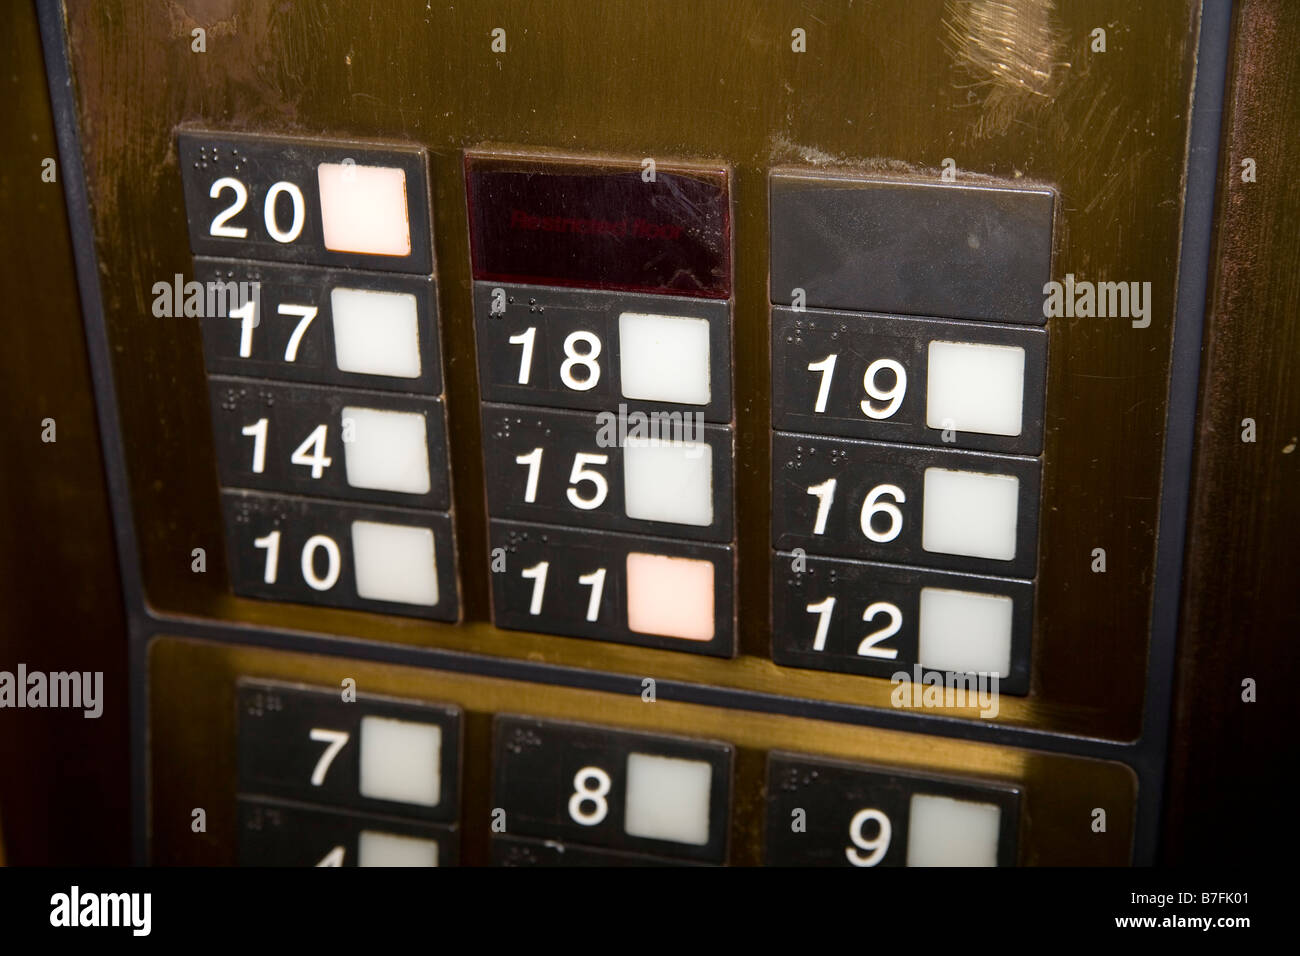 Buttons on elevator panel show no 13th floor humoring for 13 th floor elevator